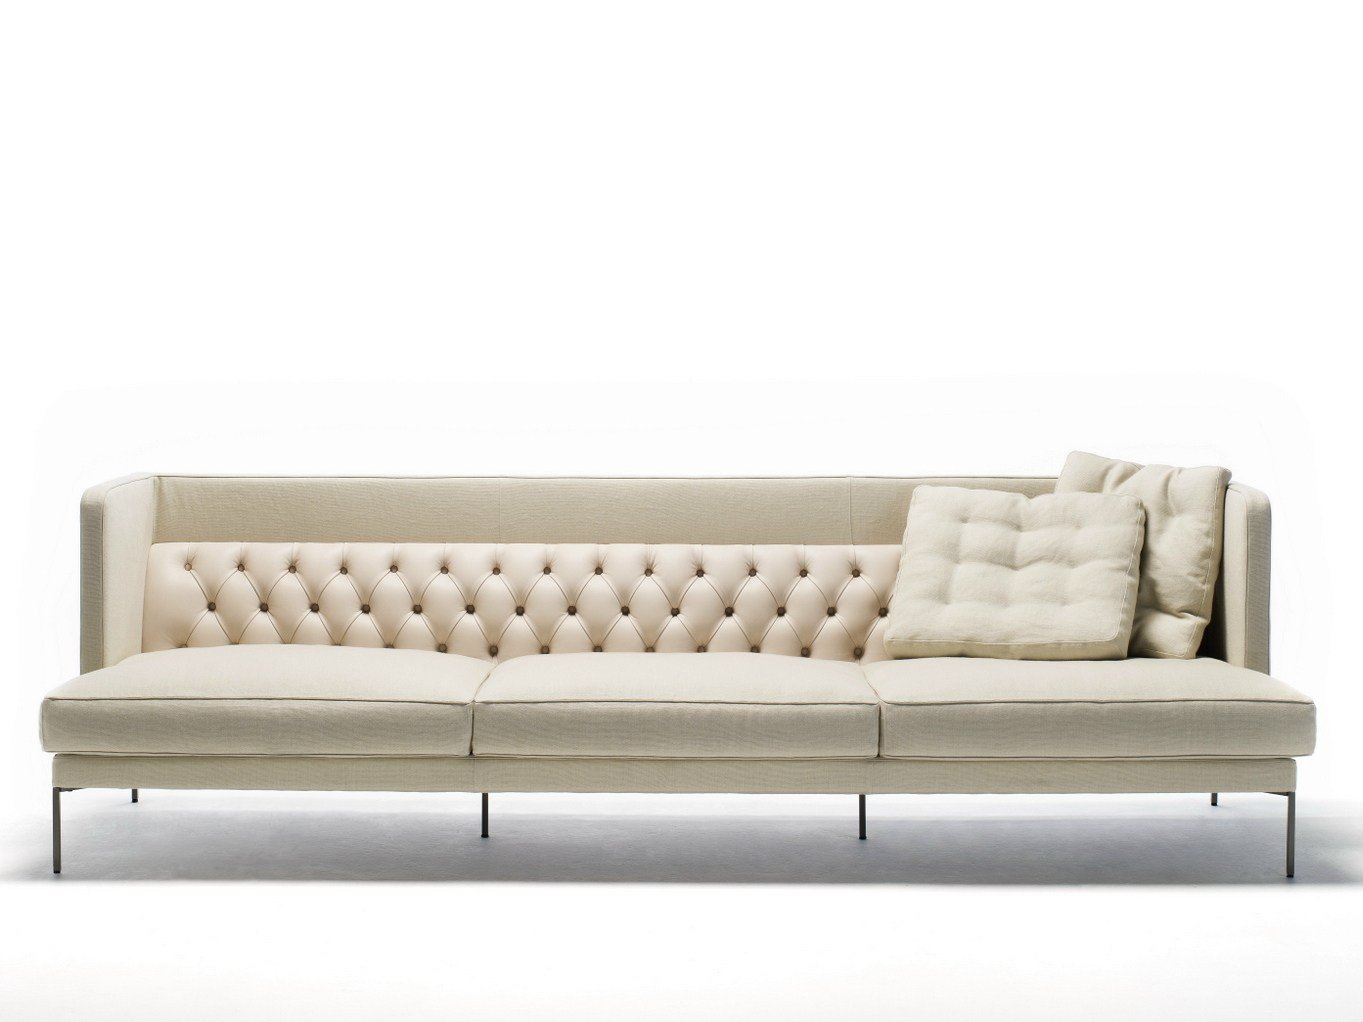 lipp sofa by living divani design piero lissoni. Black Bedroom Furniture Sets. Home Design Ideas